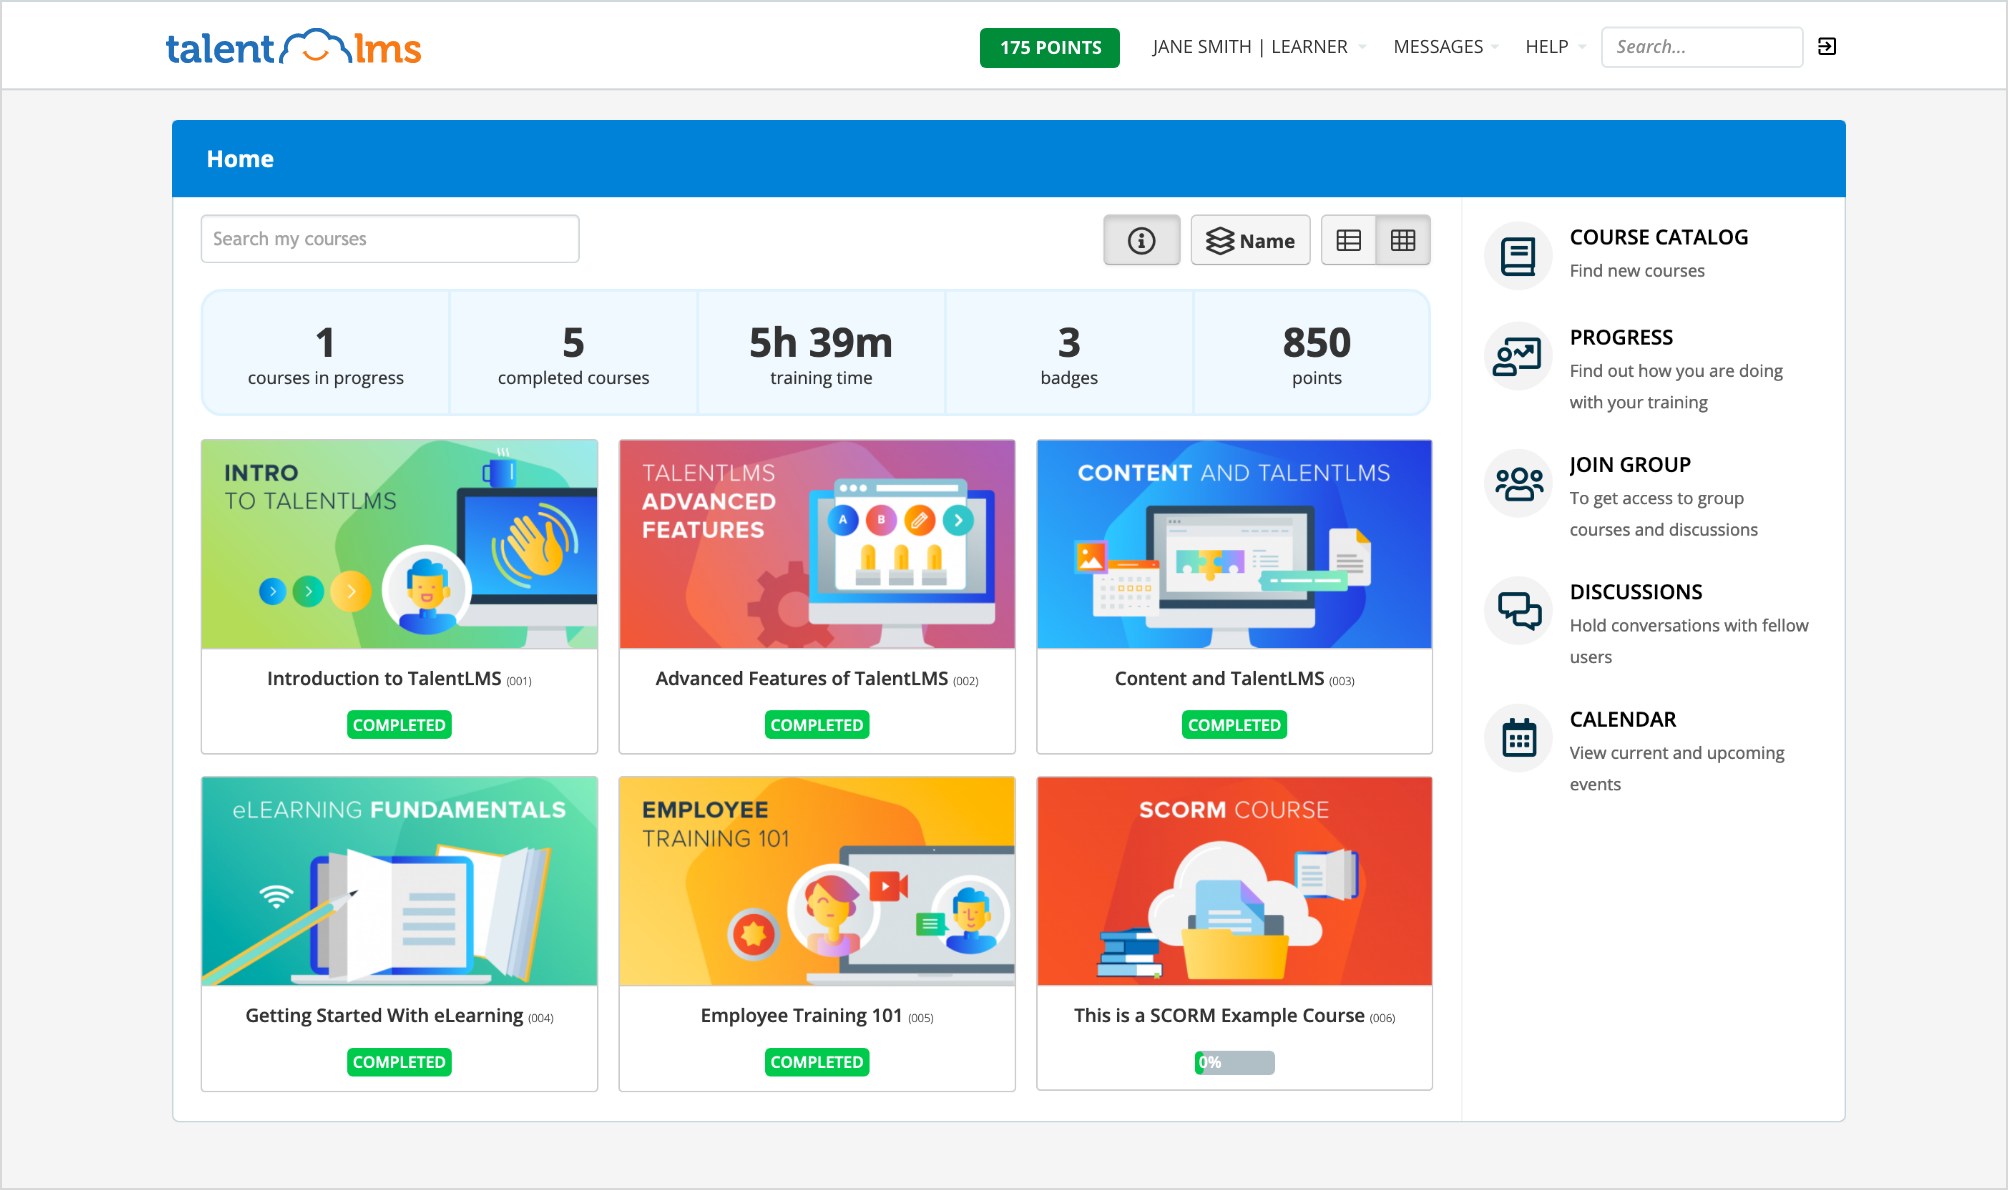 TalentLMS screenshot: TalentLMS Learner home page featuring courses and course status